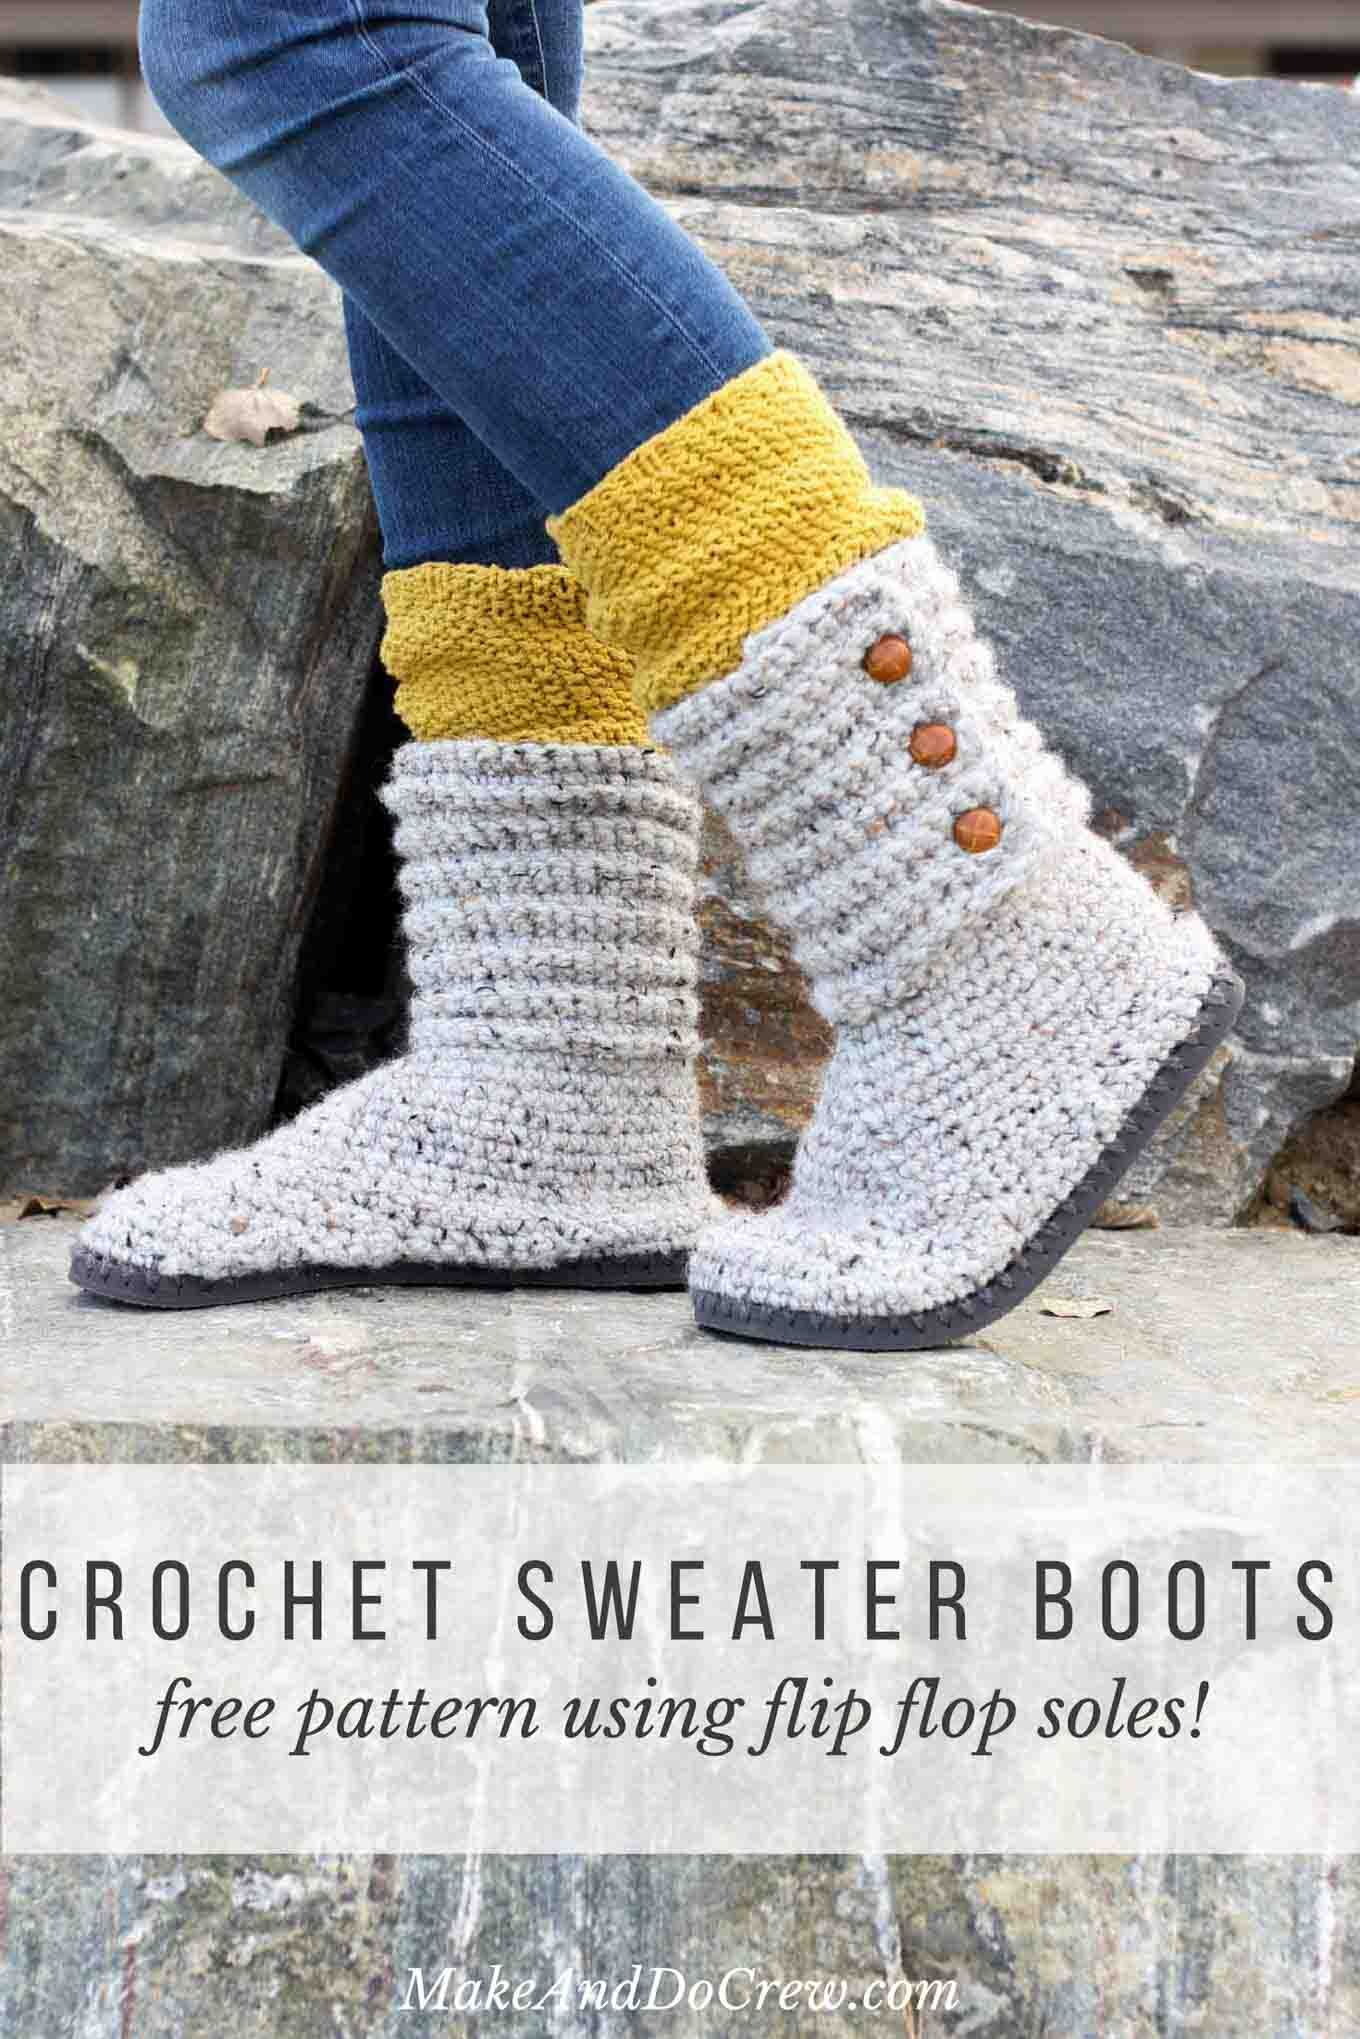 How to Crochet Boots with Flip Flops - Free Pattern + Video Tutorial ...